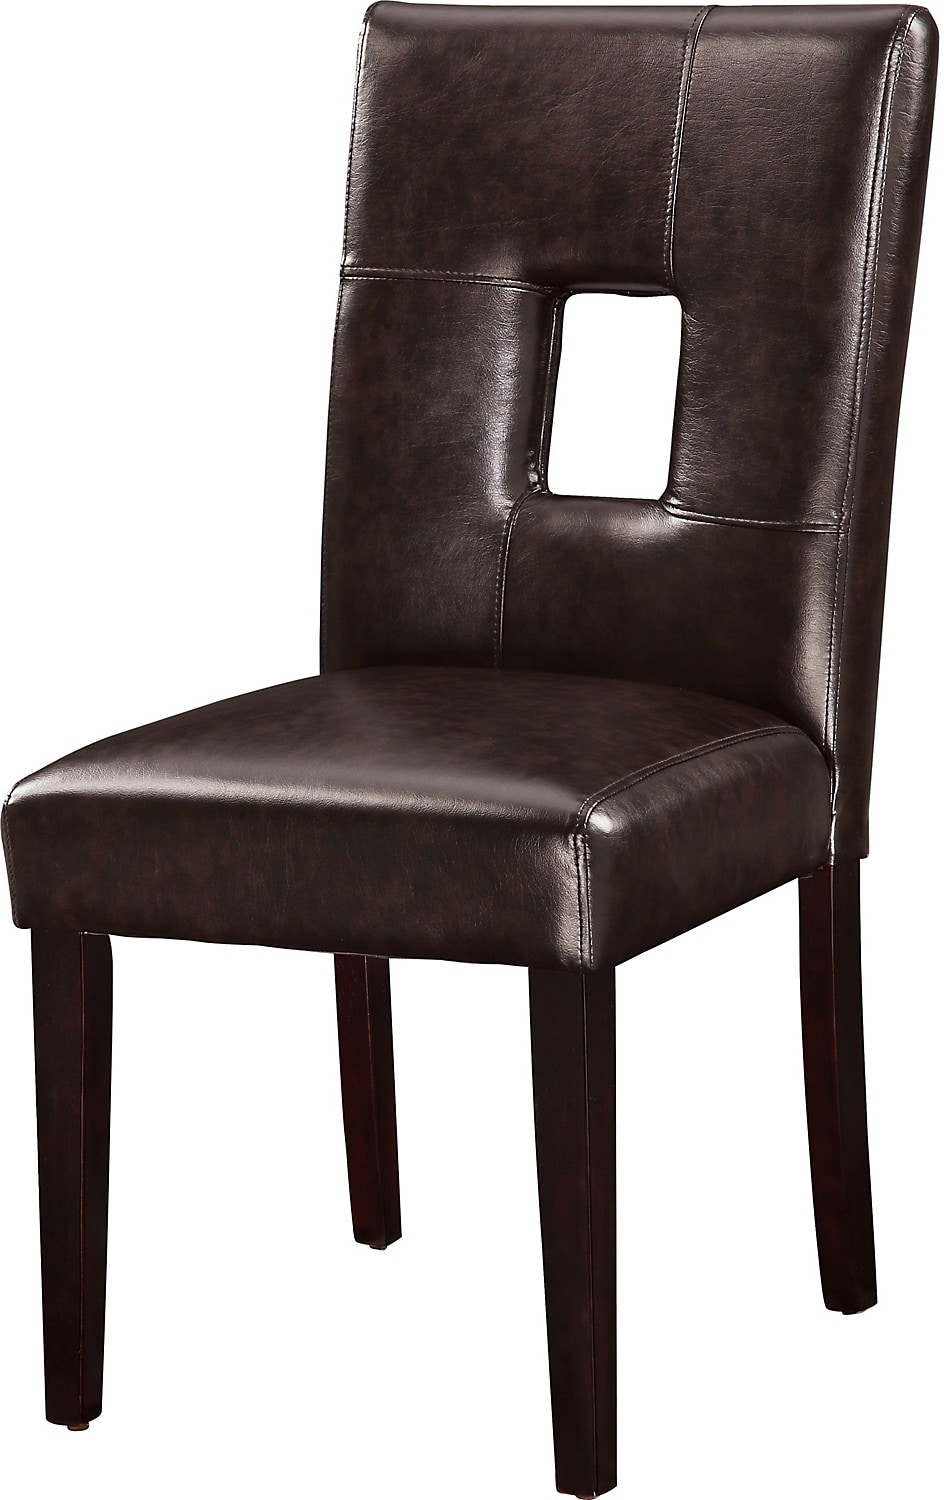 Dining room furniture mckena faux leather dining chair for Faux leather dining chairs